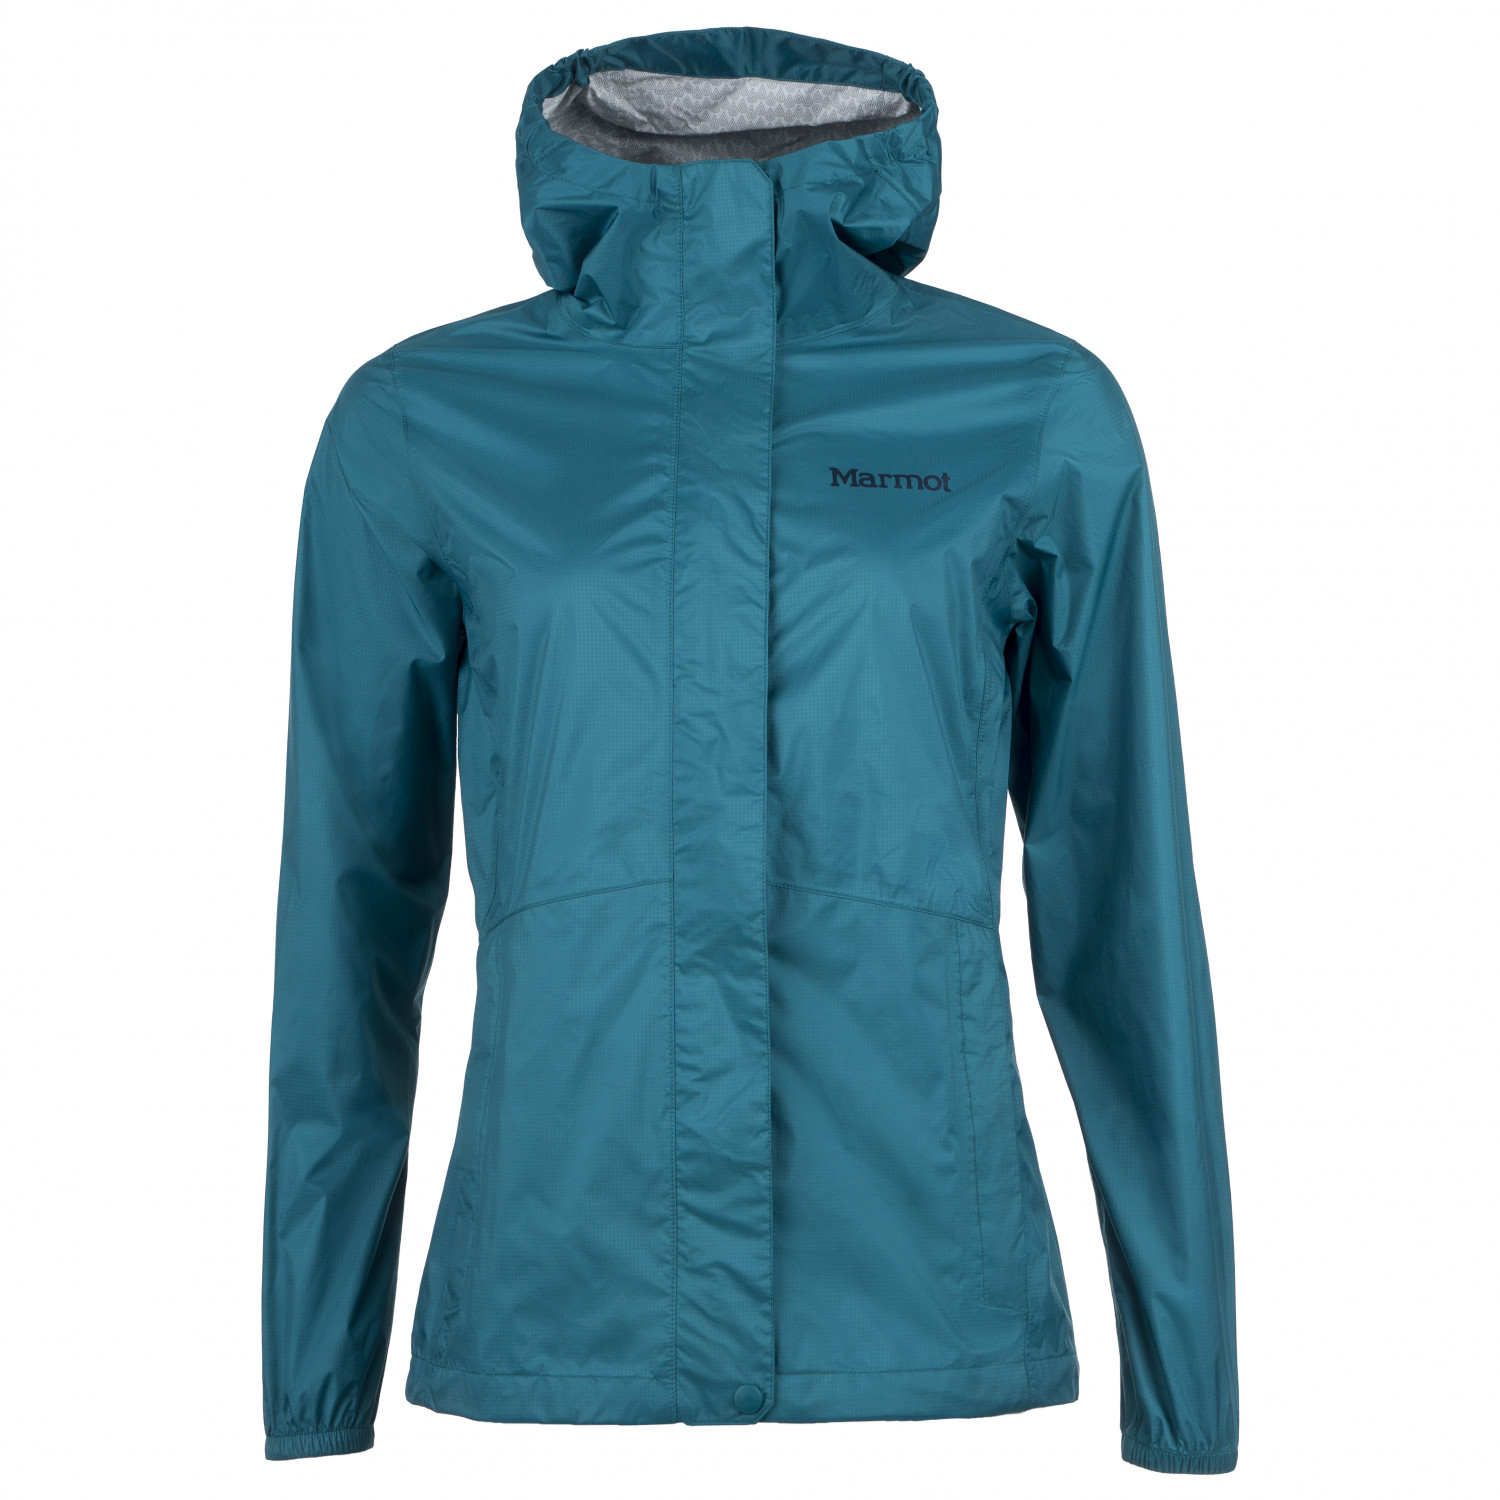 Marmot Women's PreCip Eco Lite Jacket Veste imperméable